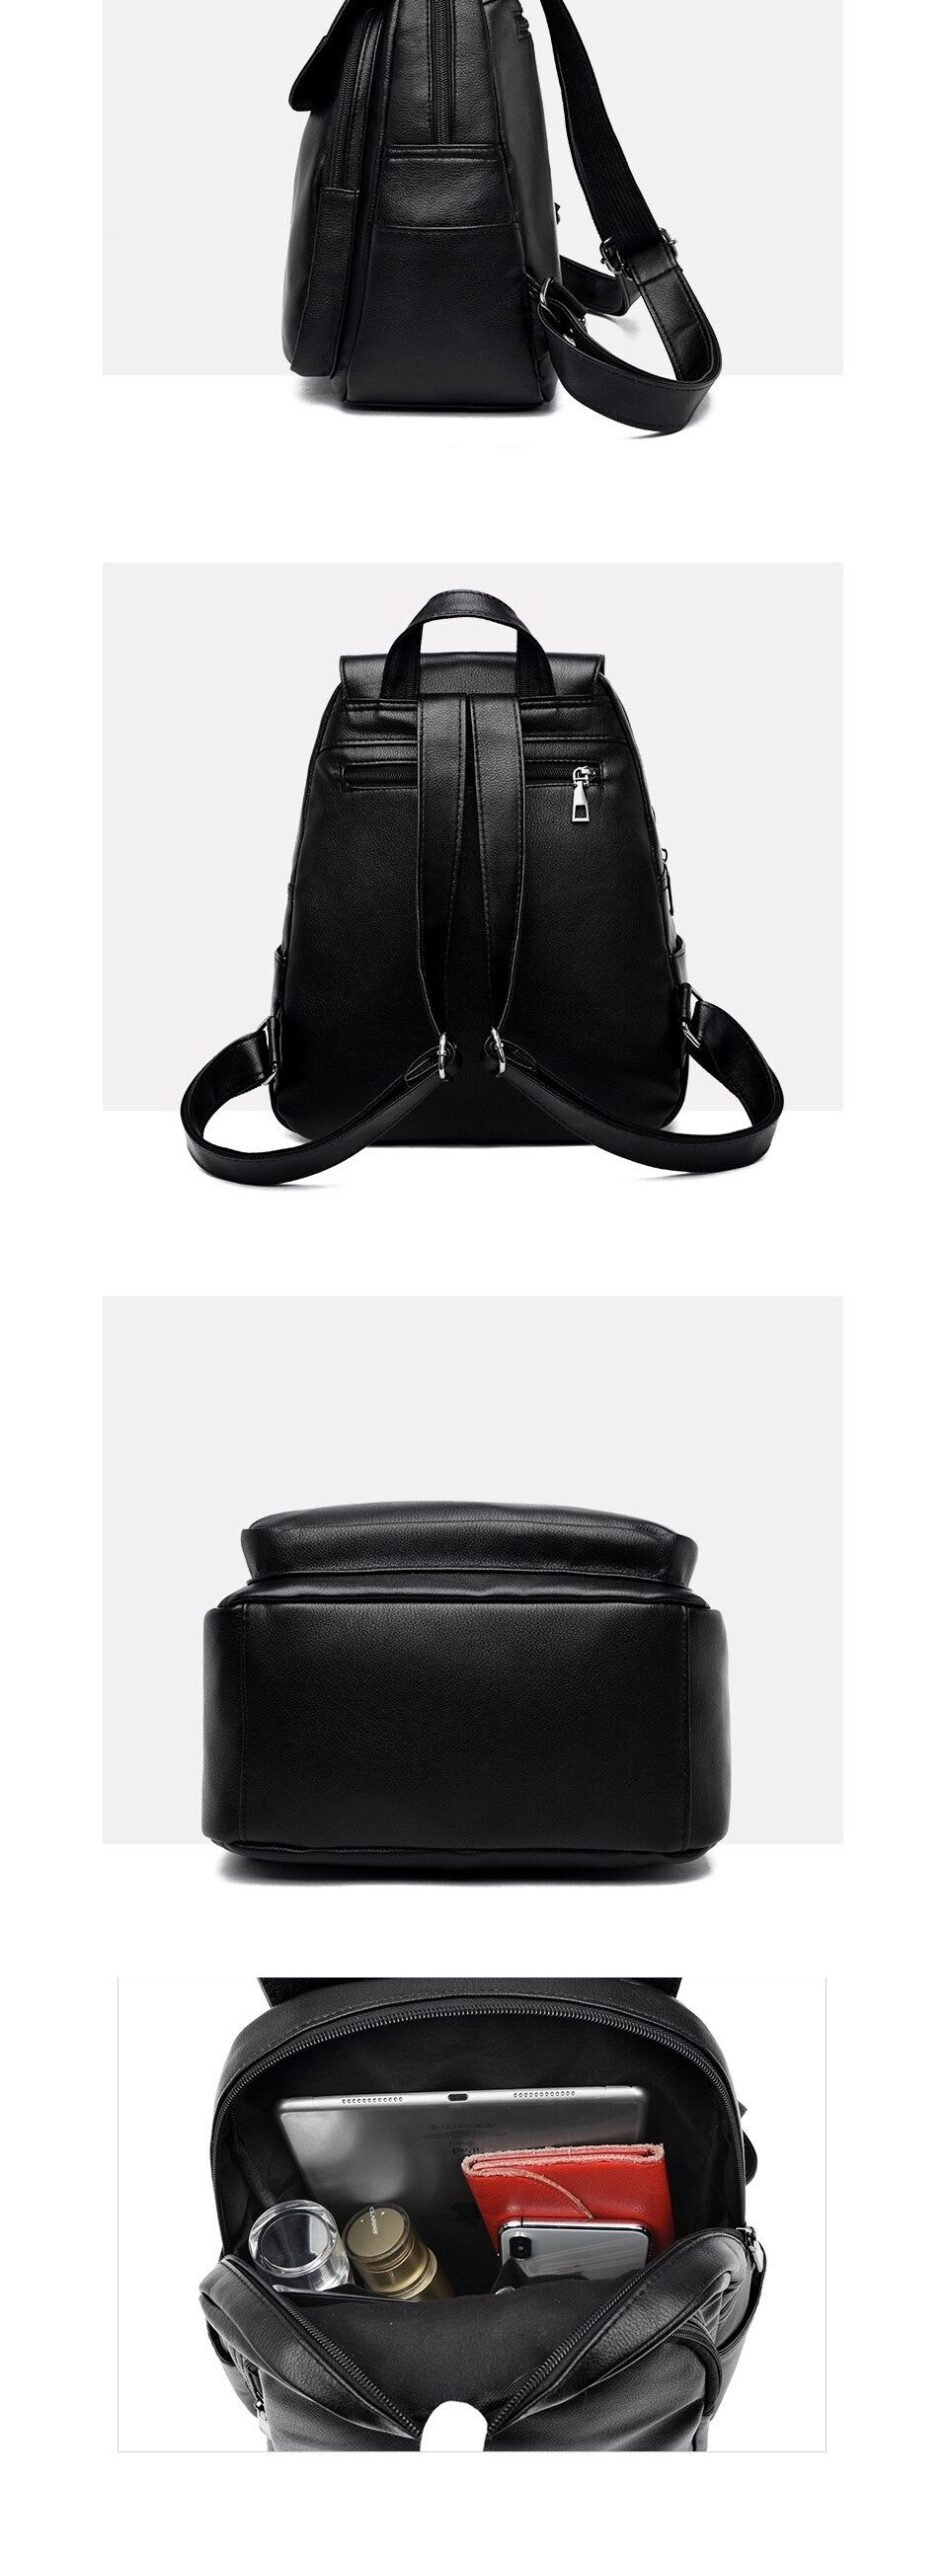 ACELURE Large School Bags Teenager Students Travel Bags Casual Fashion Soft Solid PU Leather High Capacity Backpacks for Women